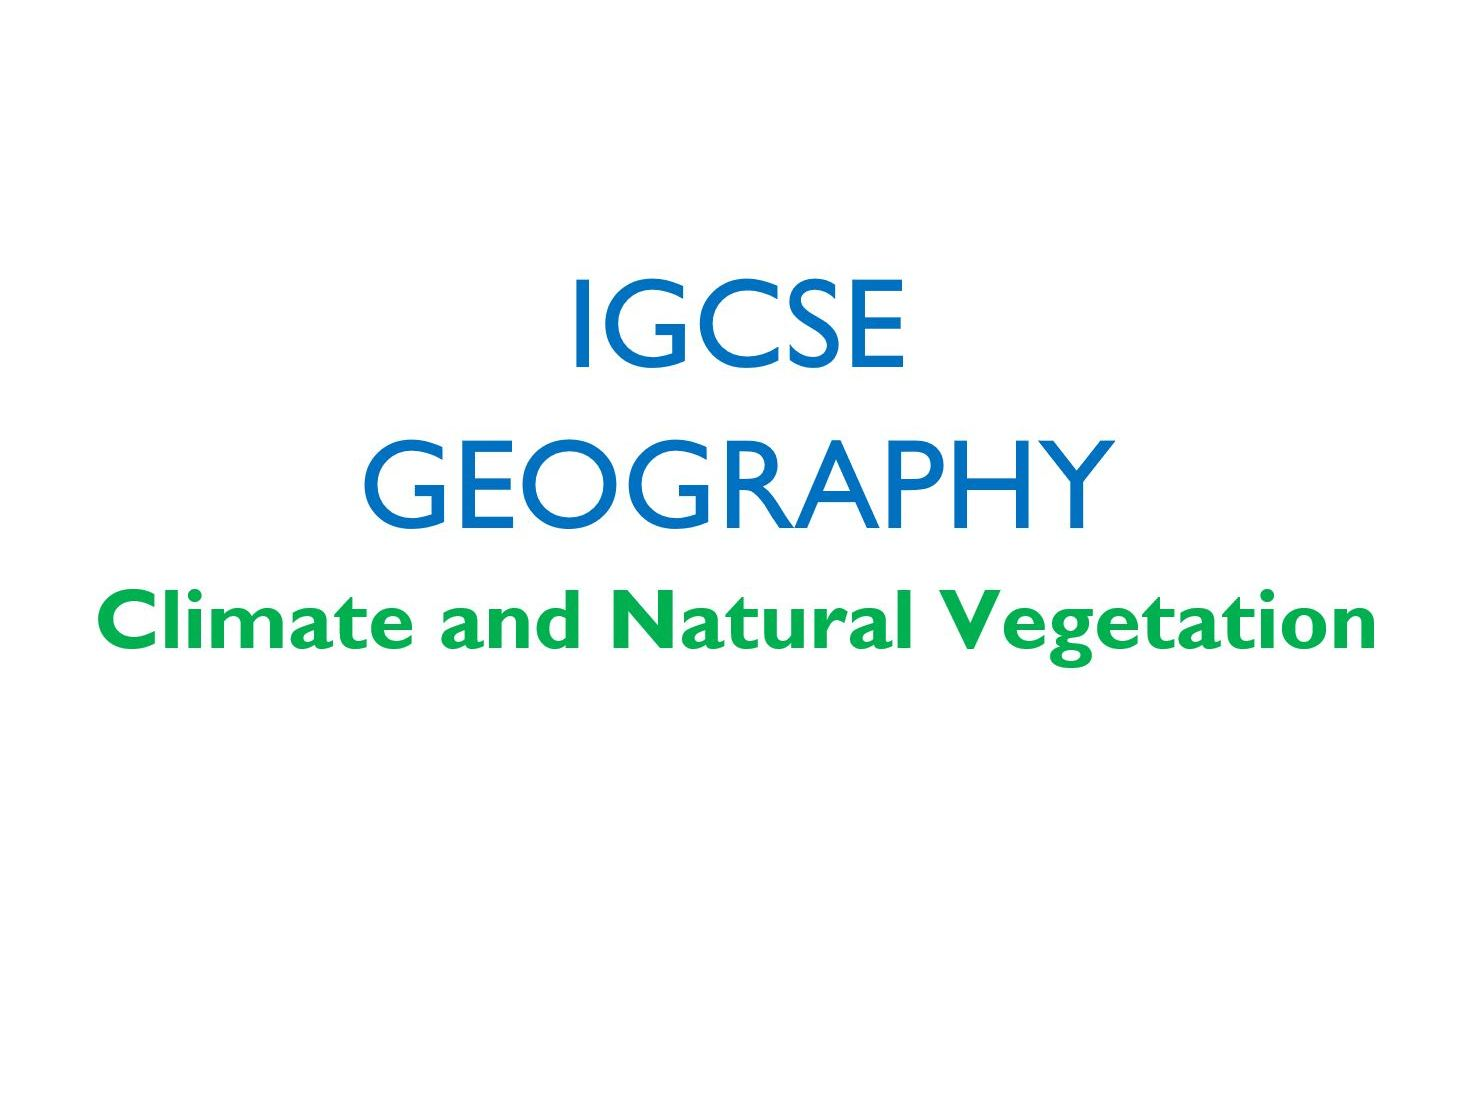 IGCSE Geography - Climate and Natural Veg. - Full Set of Lessons